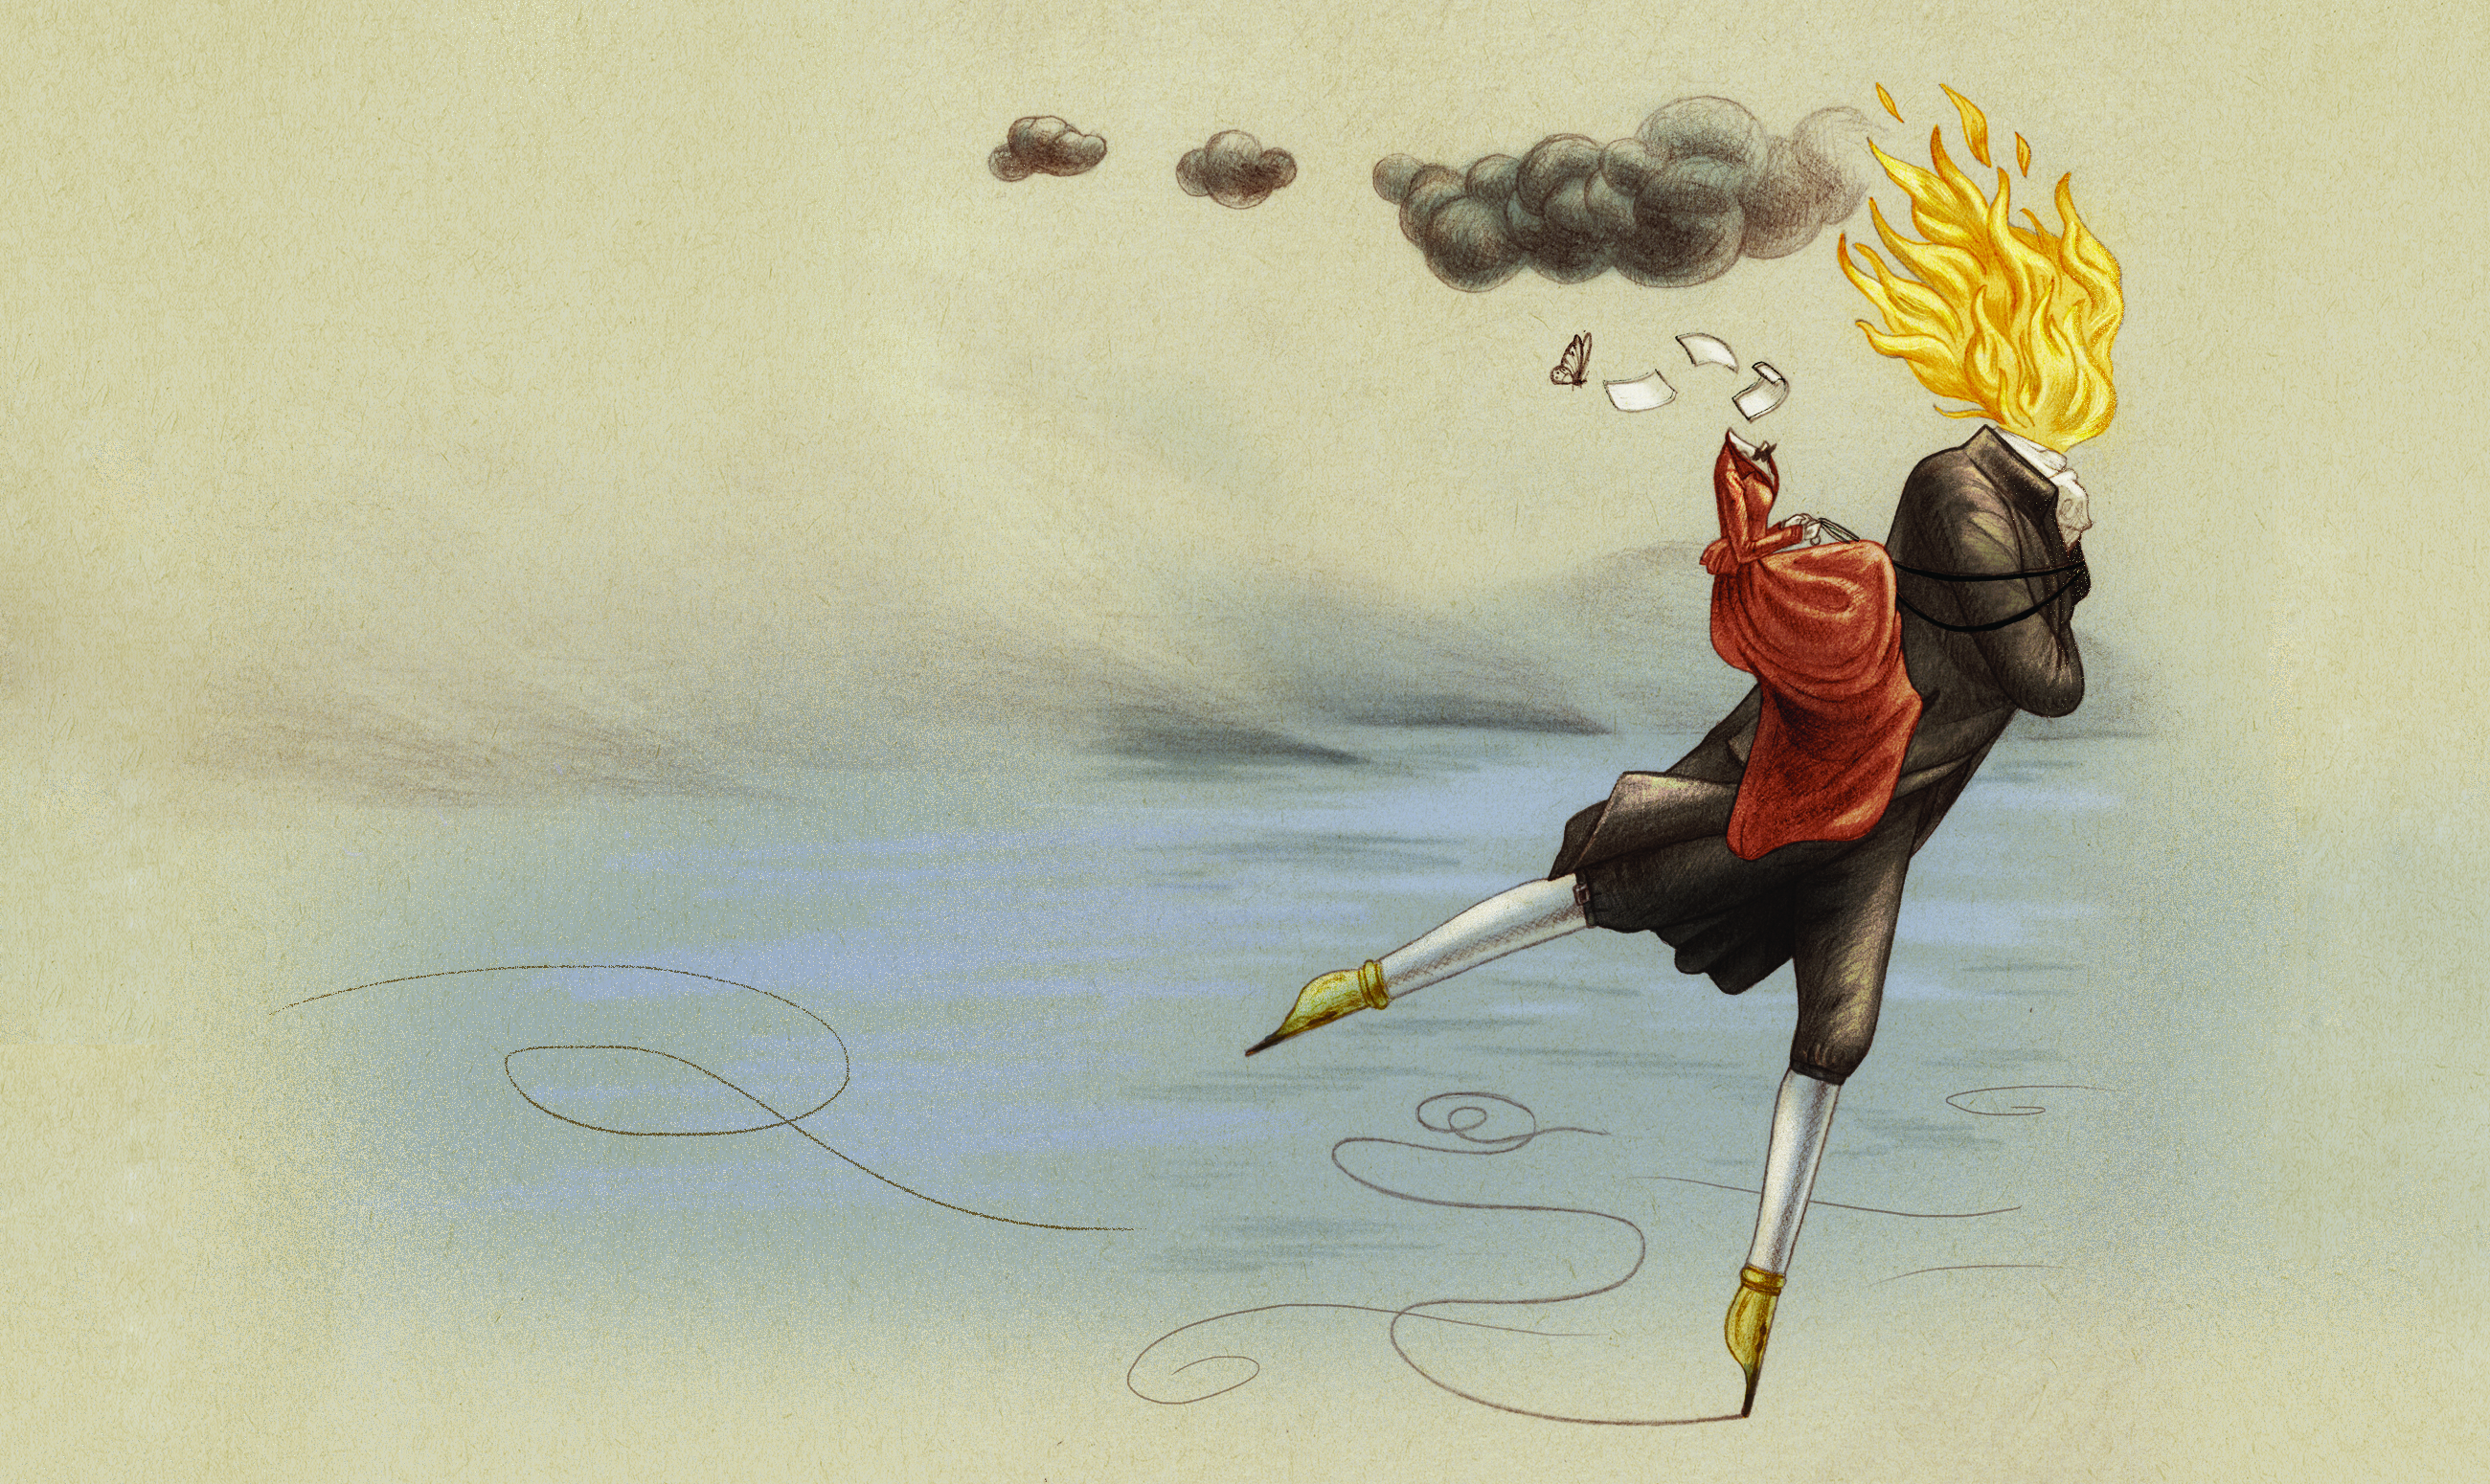 National Poetry Competition artwork: a figure with flames for a head and fountain pens for legs leans forward, leg outstretched, with a figure in a red dress sitting on their back and a grey cloud in the sky